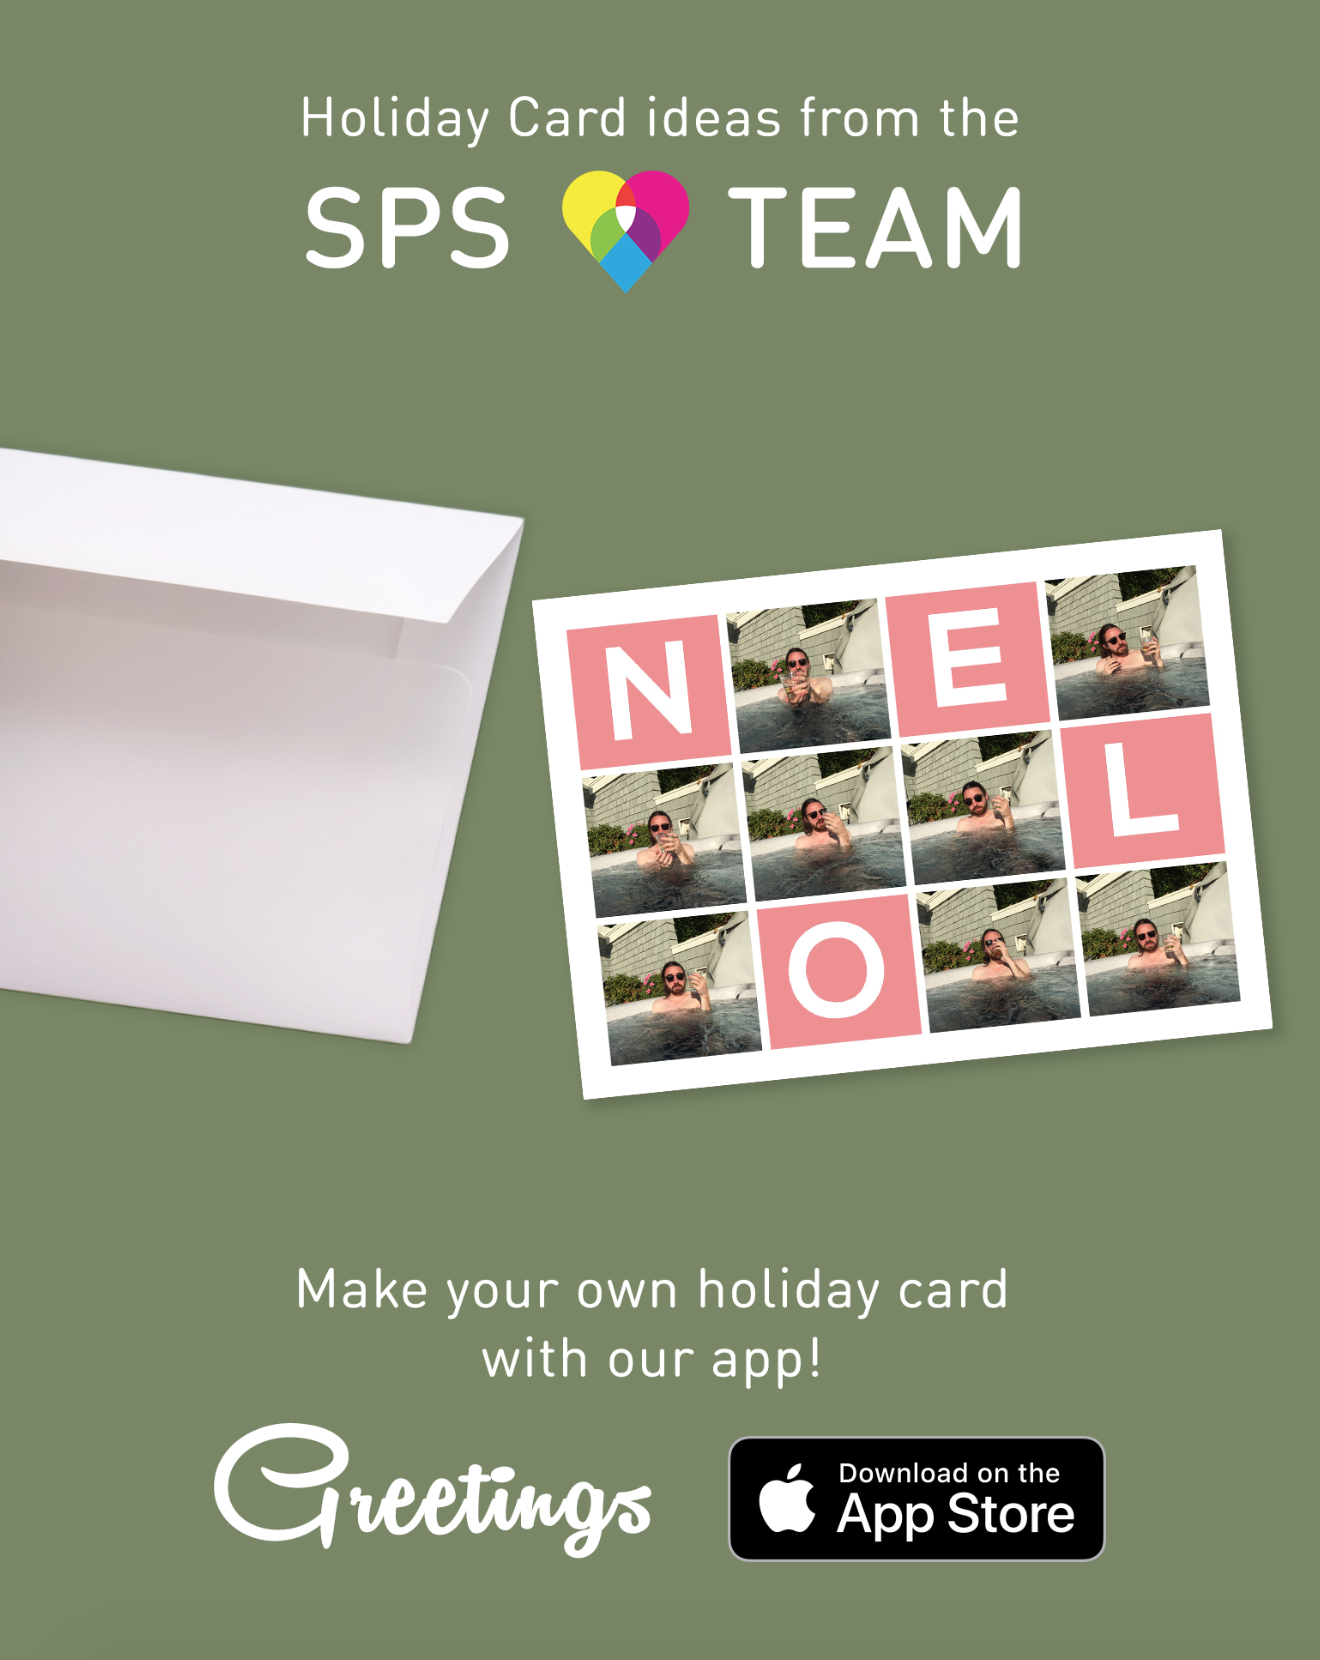 Need Ideas For What To Print On Your 2018 Holiday Cards We Ve Rounded Up Some Fun And Easy Card From The Social Studio Team